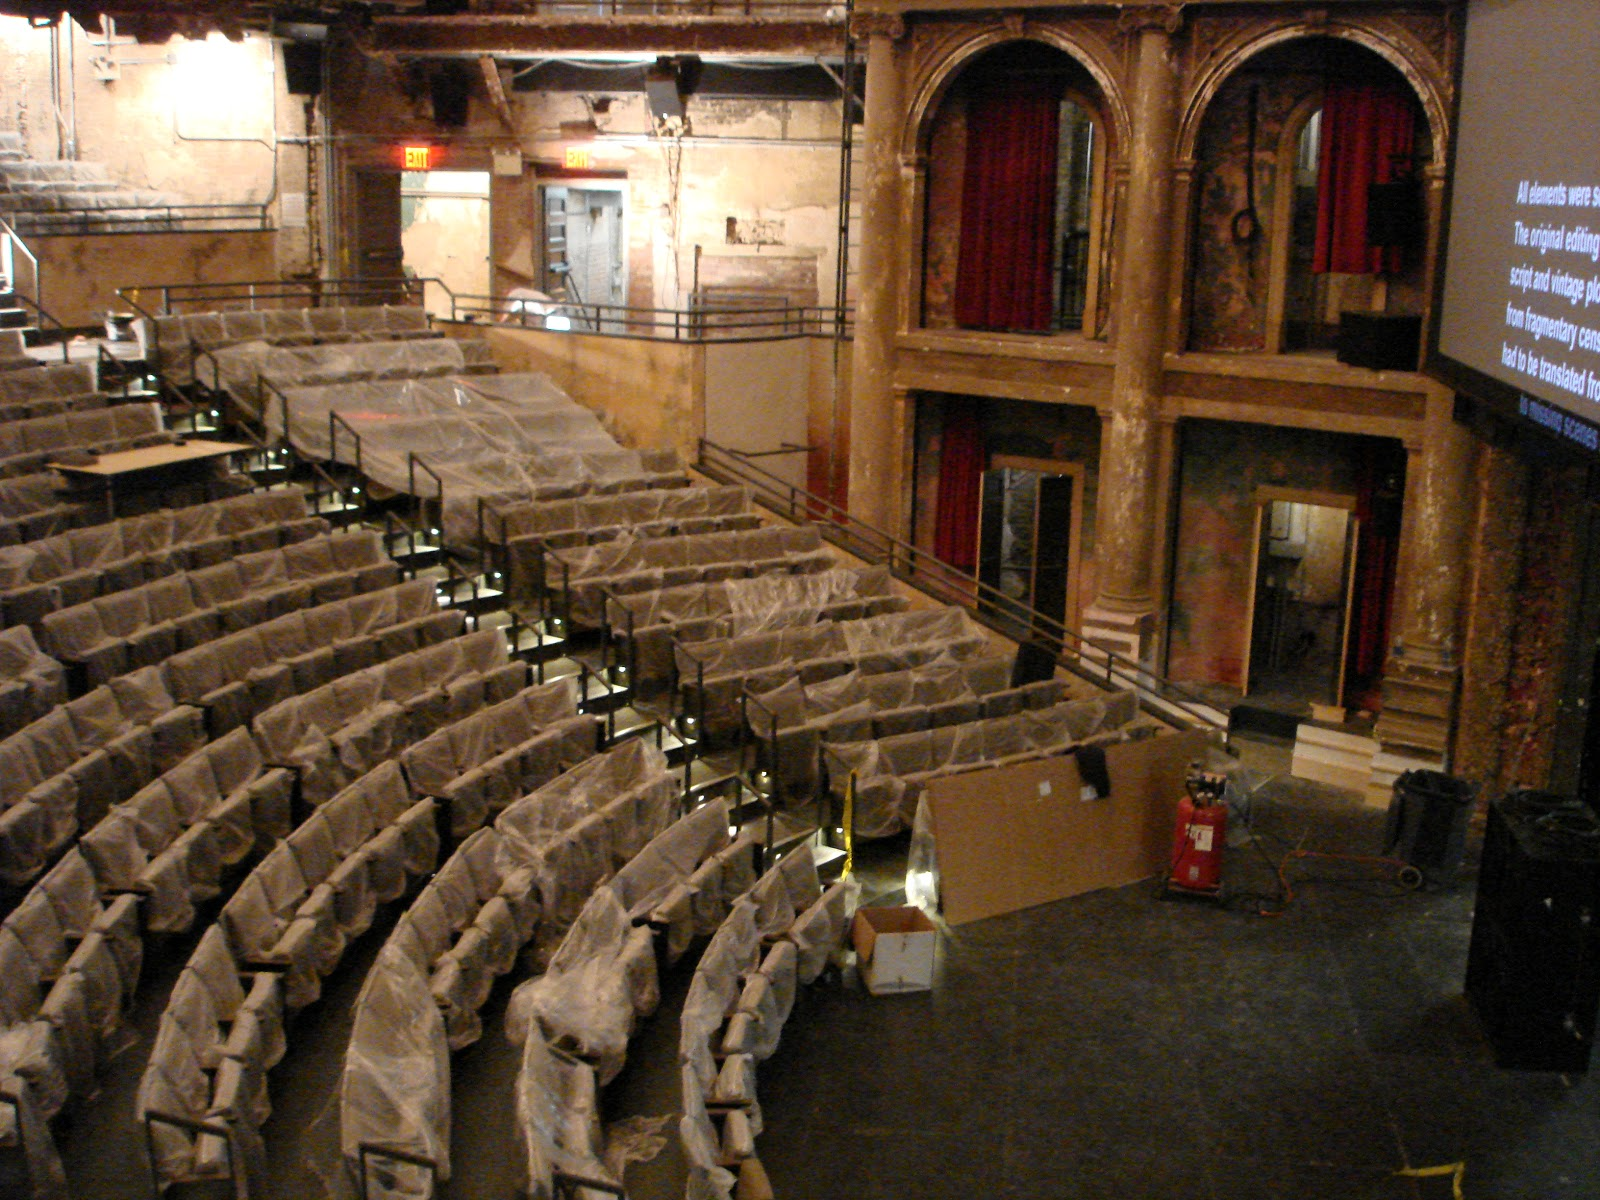 harvey theatre seating chart: Bam blog harvey house of pain no more